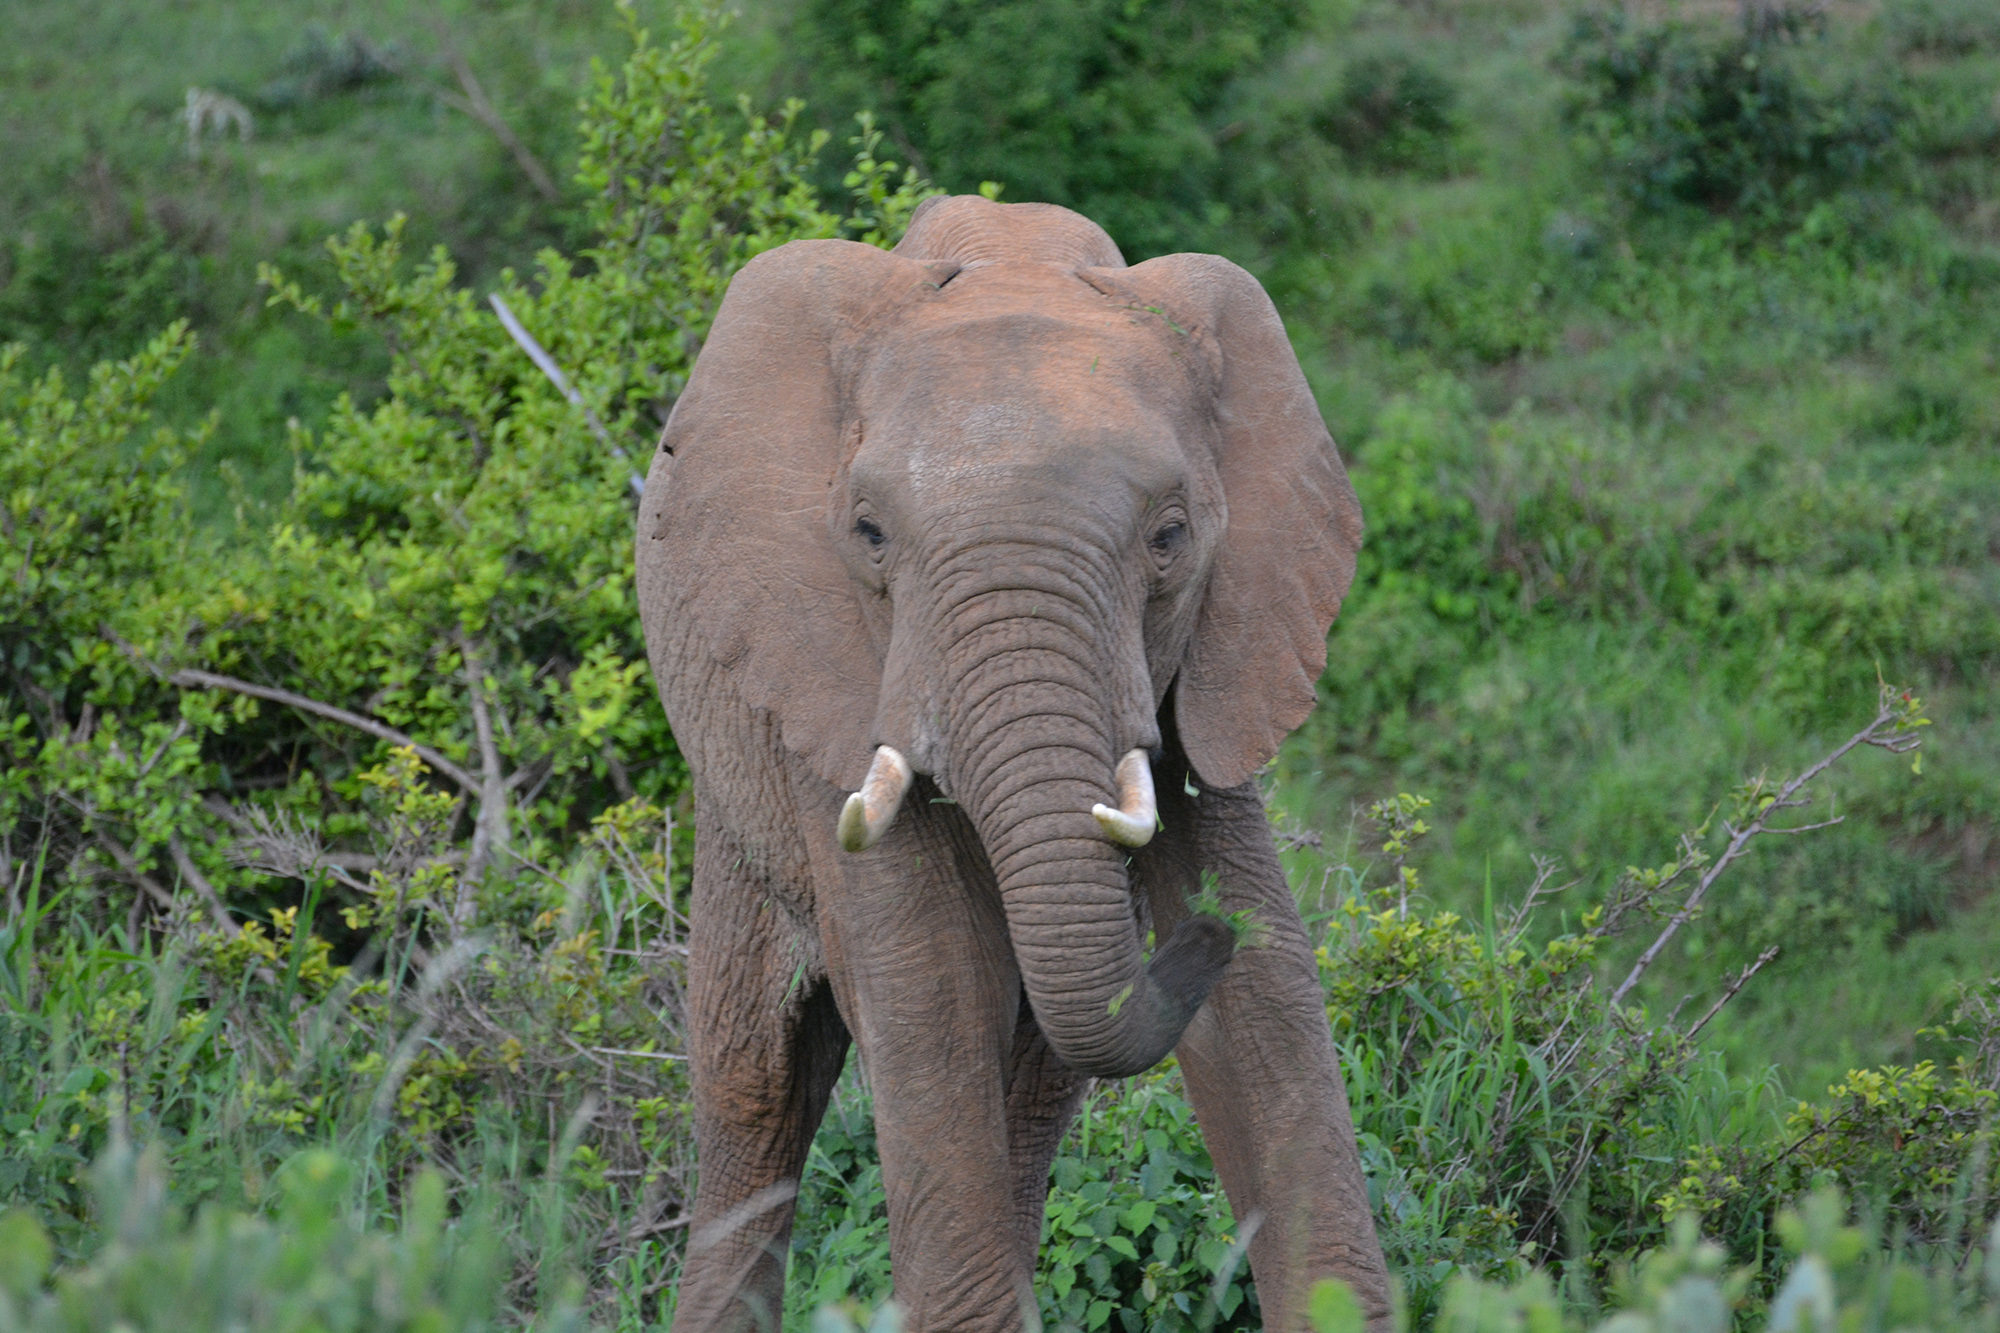 Photo: Elephant stands in national park in Kenya.